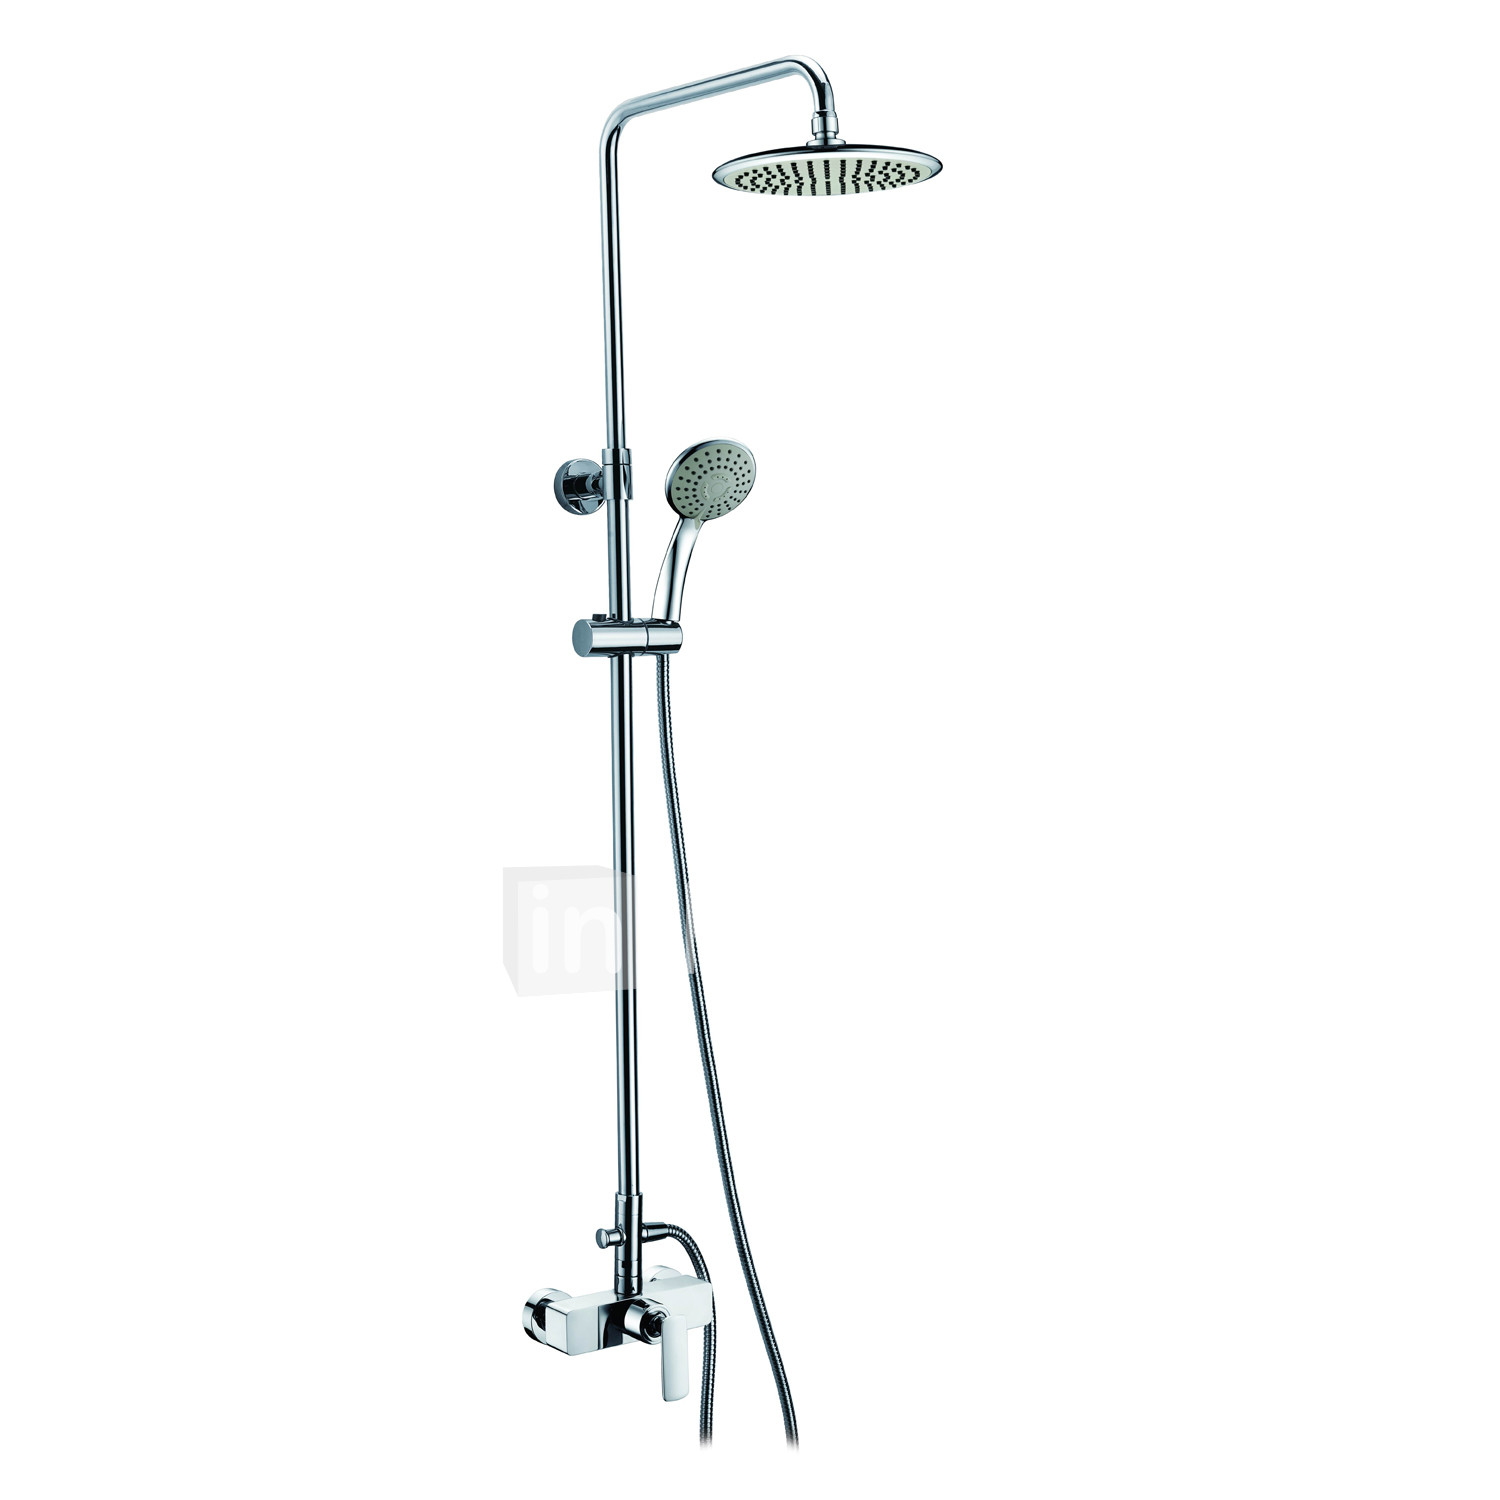 Contemporary Chrome Finish Single Handle Adjustable Height Shower Faucet